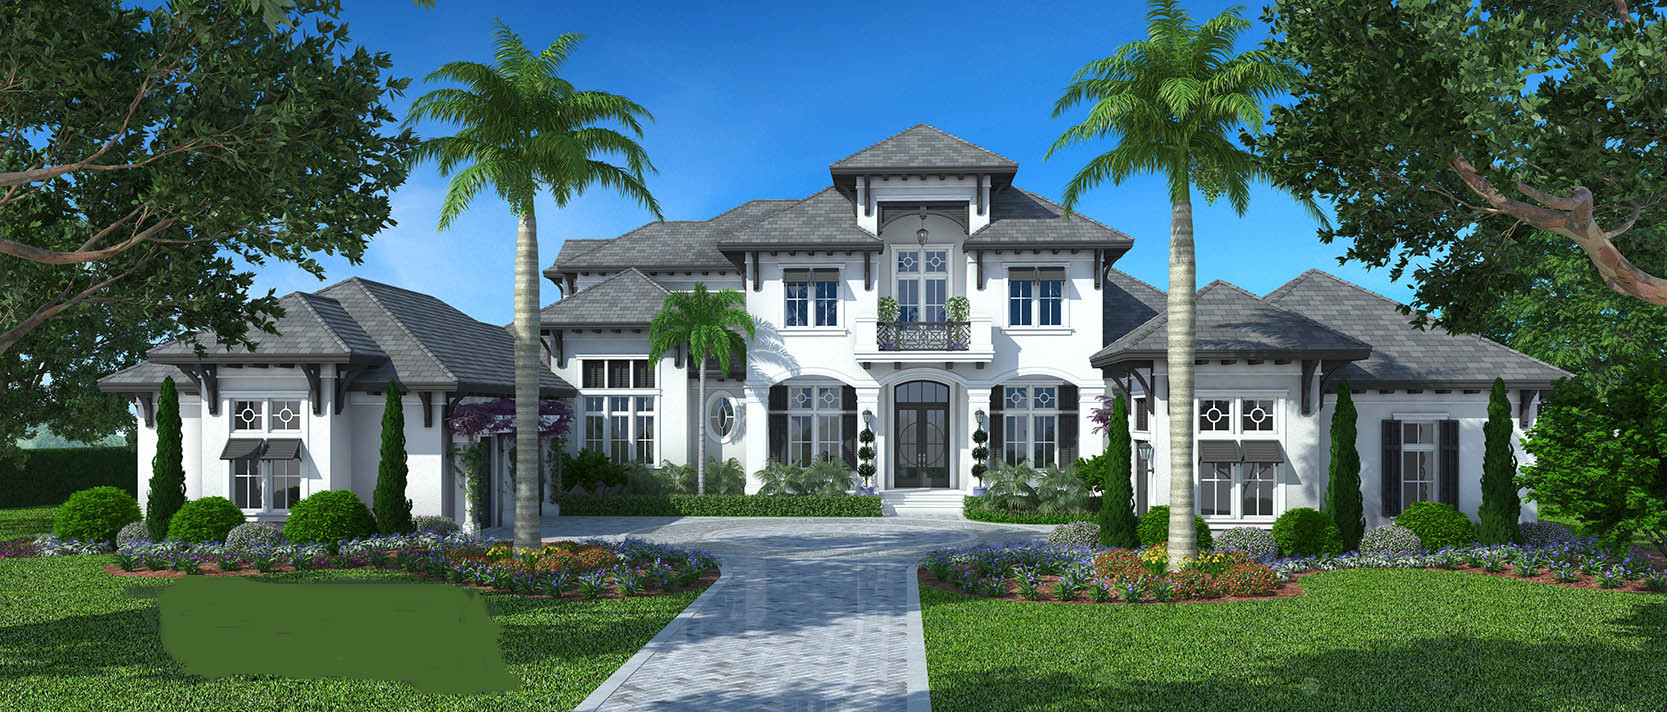 Luxury house plan 175 1094 4 bedrm 6200 sq ft home for 10000 square feet building